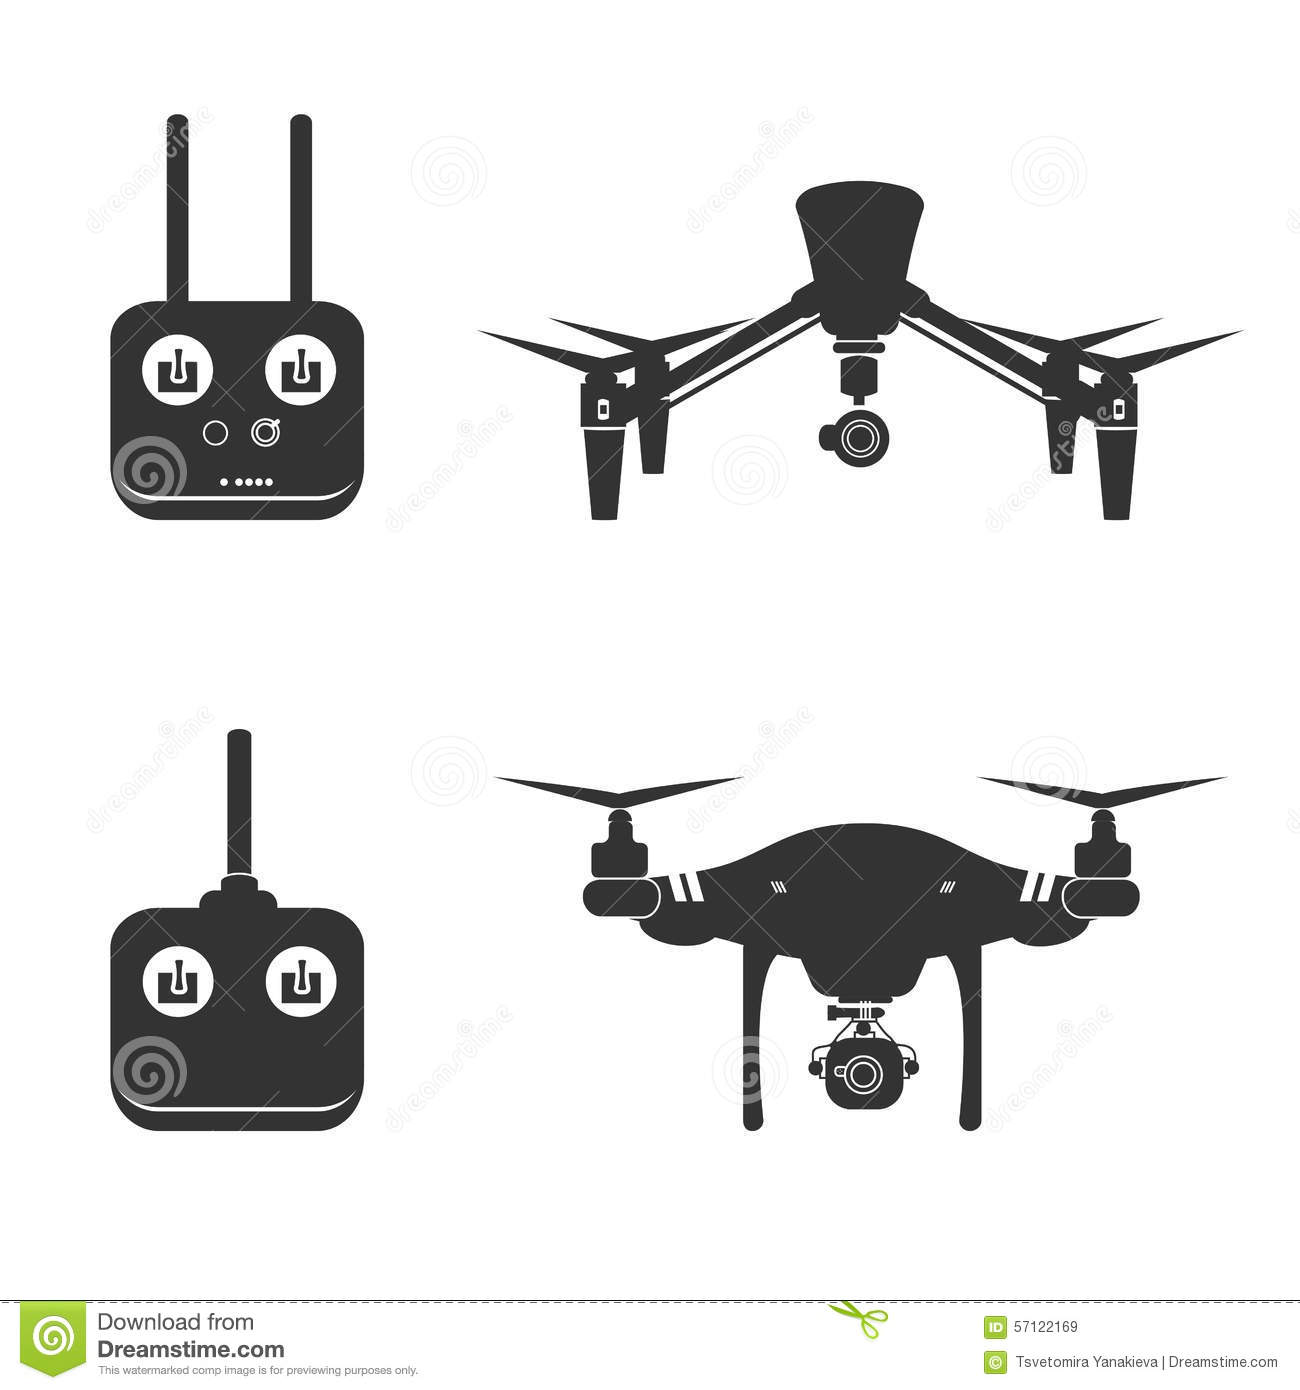 6 rotor remote control helicopter camera with Stock Illustration Drone Silhouette Video Aerial Fly Helicopter Vector Illustration Image57122169 on Showthread in addition 1200343 32796957827 furthermore Hexacopter Microcopter 24 2 2010 together with Stock Illustration Quadcopter Flying Drone Icons White Background Vector Illustration Image51162112 likewise 321101959386.